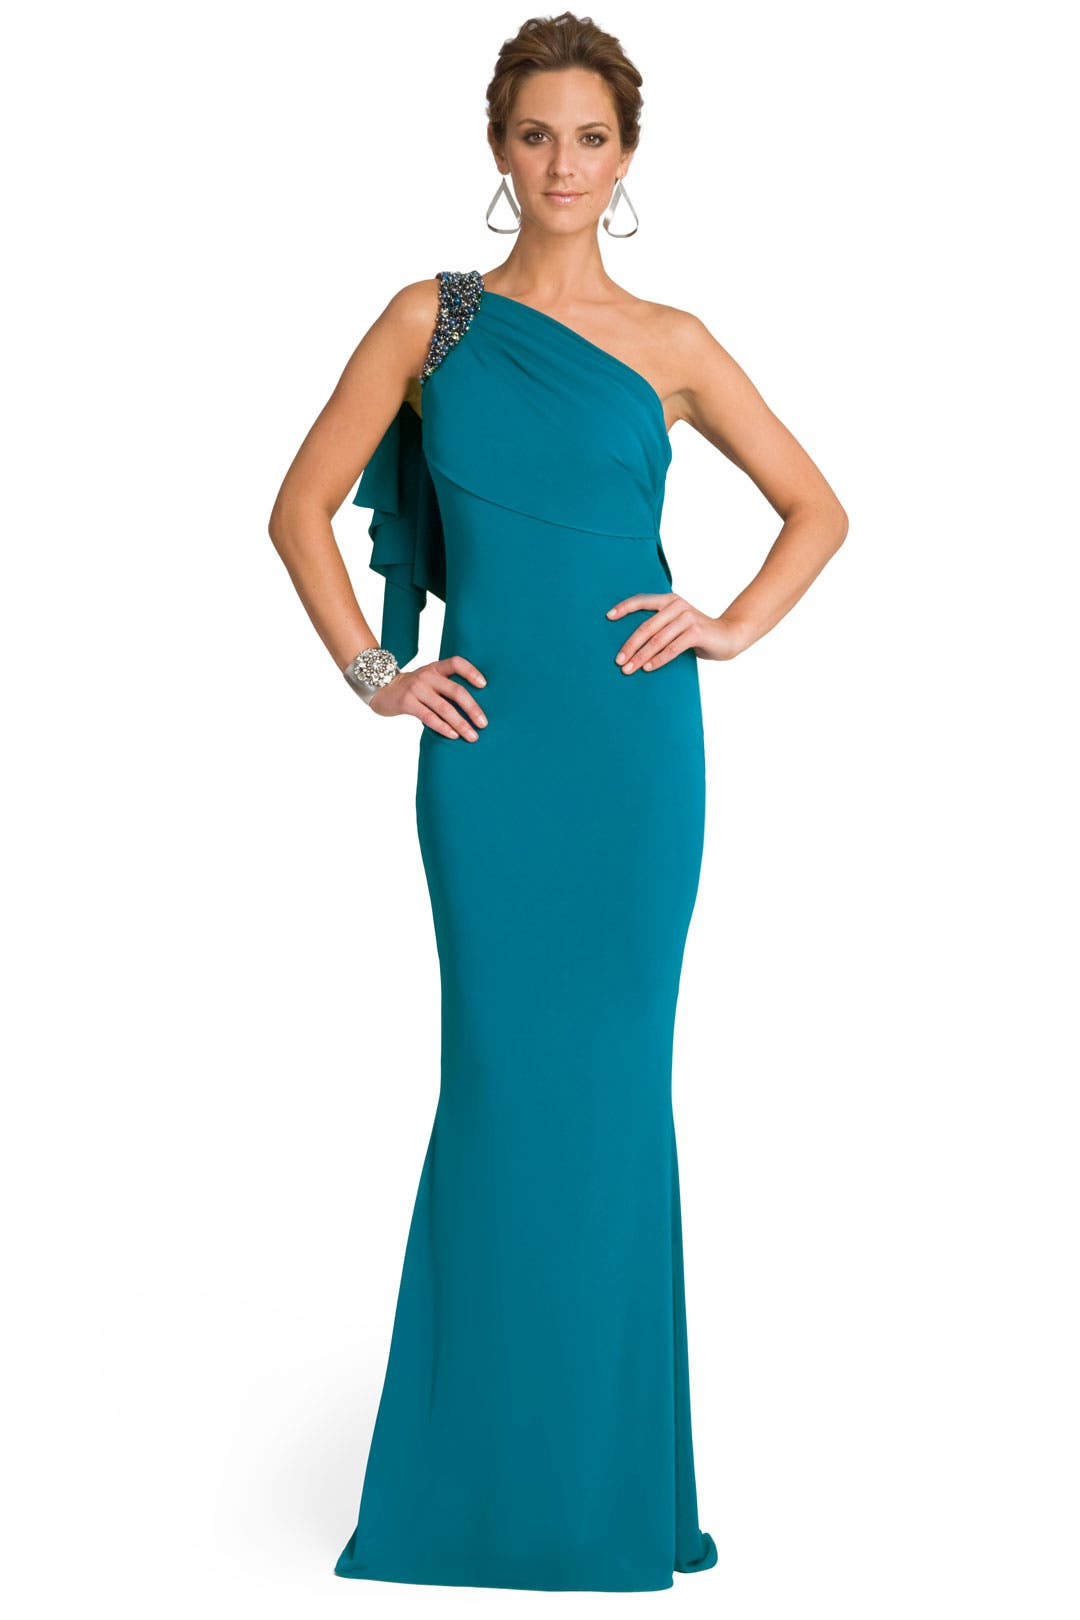 Alluring Aqua Gown by Badgley Mischka